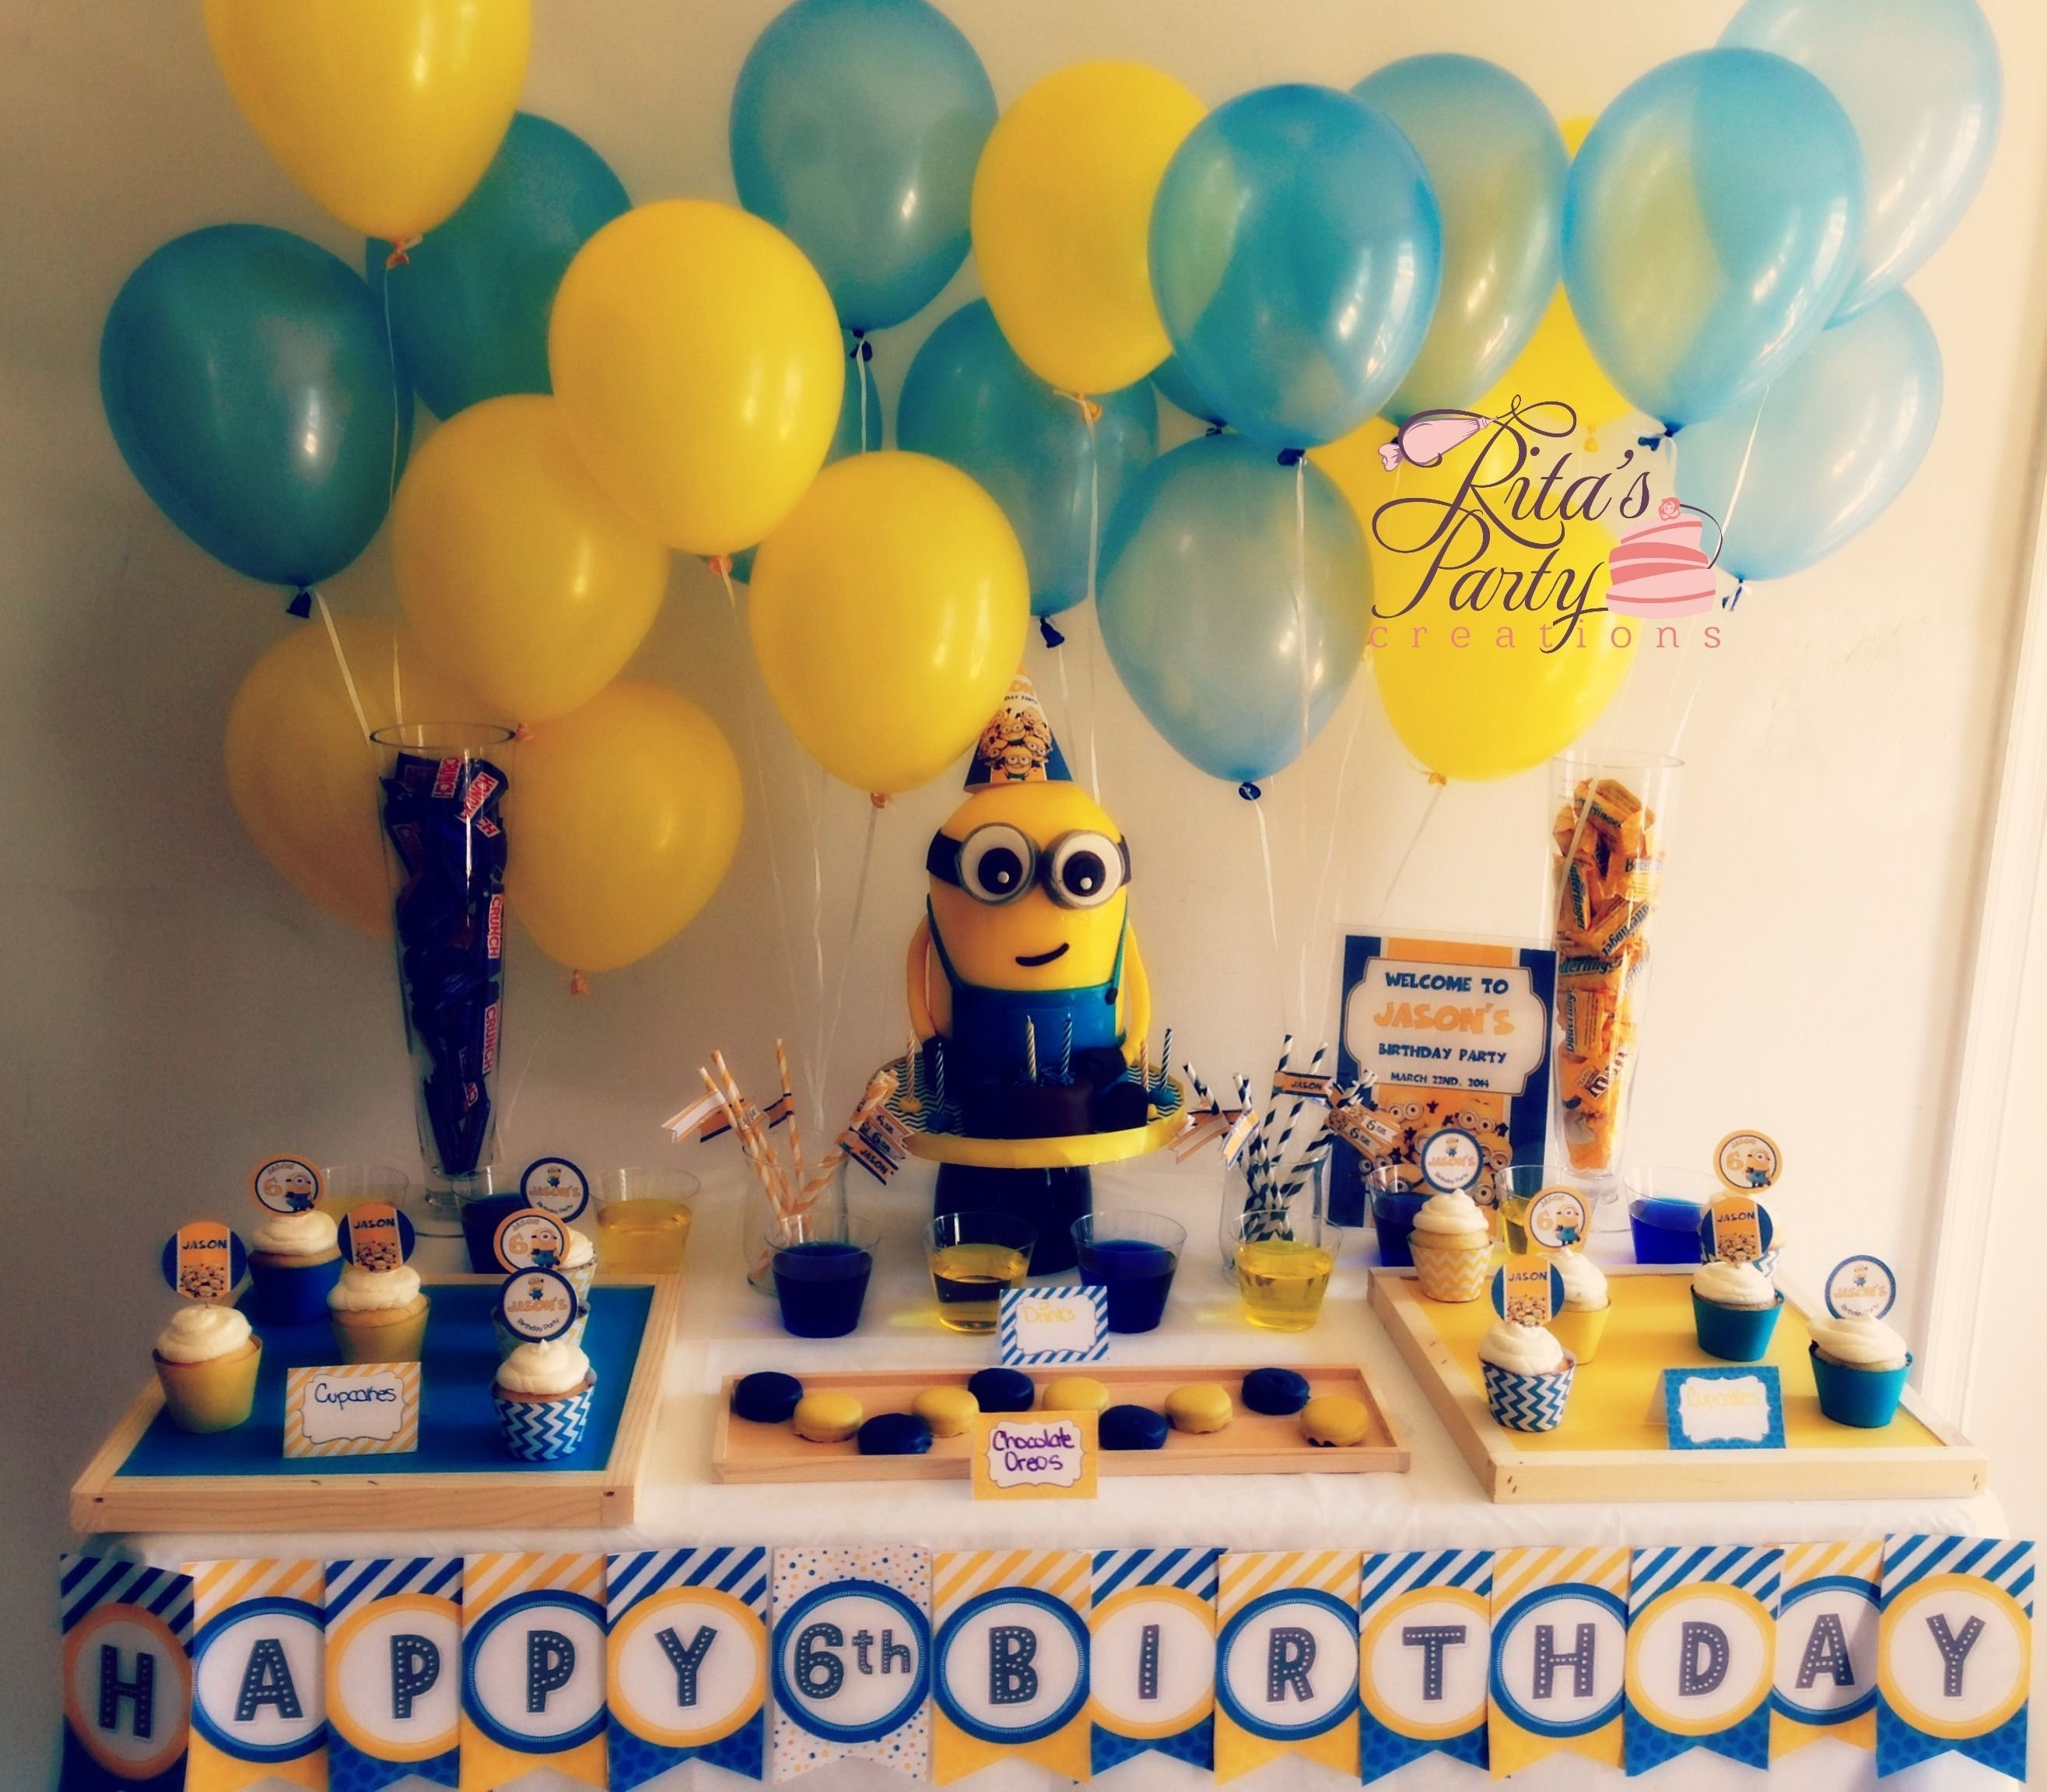 10 Lovable Birthday Ideas For 6 Year Old Boy despicable me party table for a 6 year old boy birthday cake in 8 2021